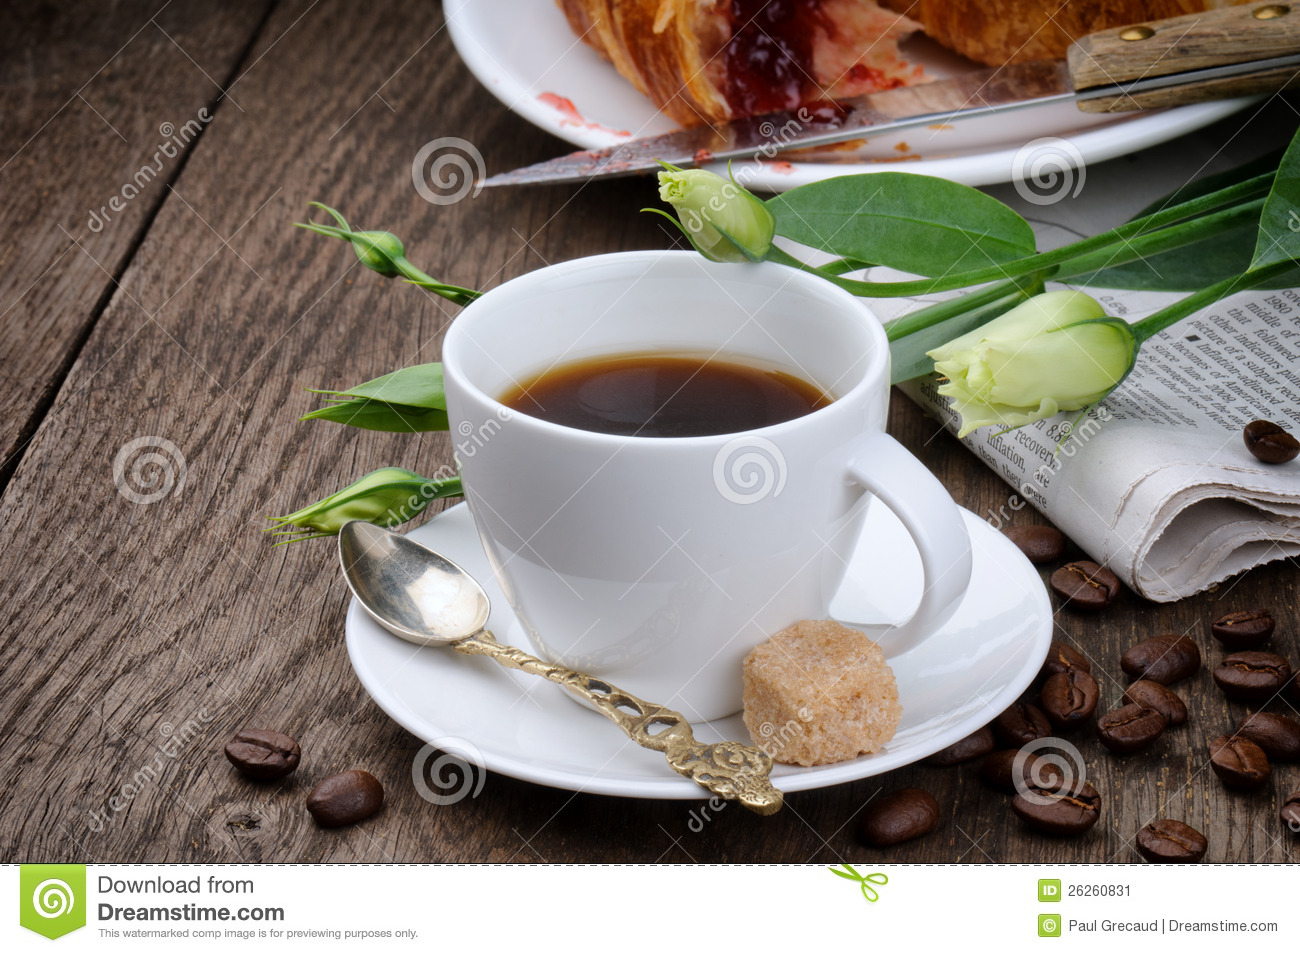 Morning Coffee Time With Newspaper Stock Image - Image: 26260831